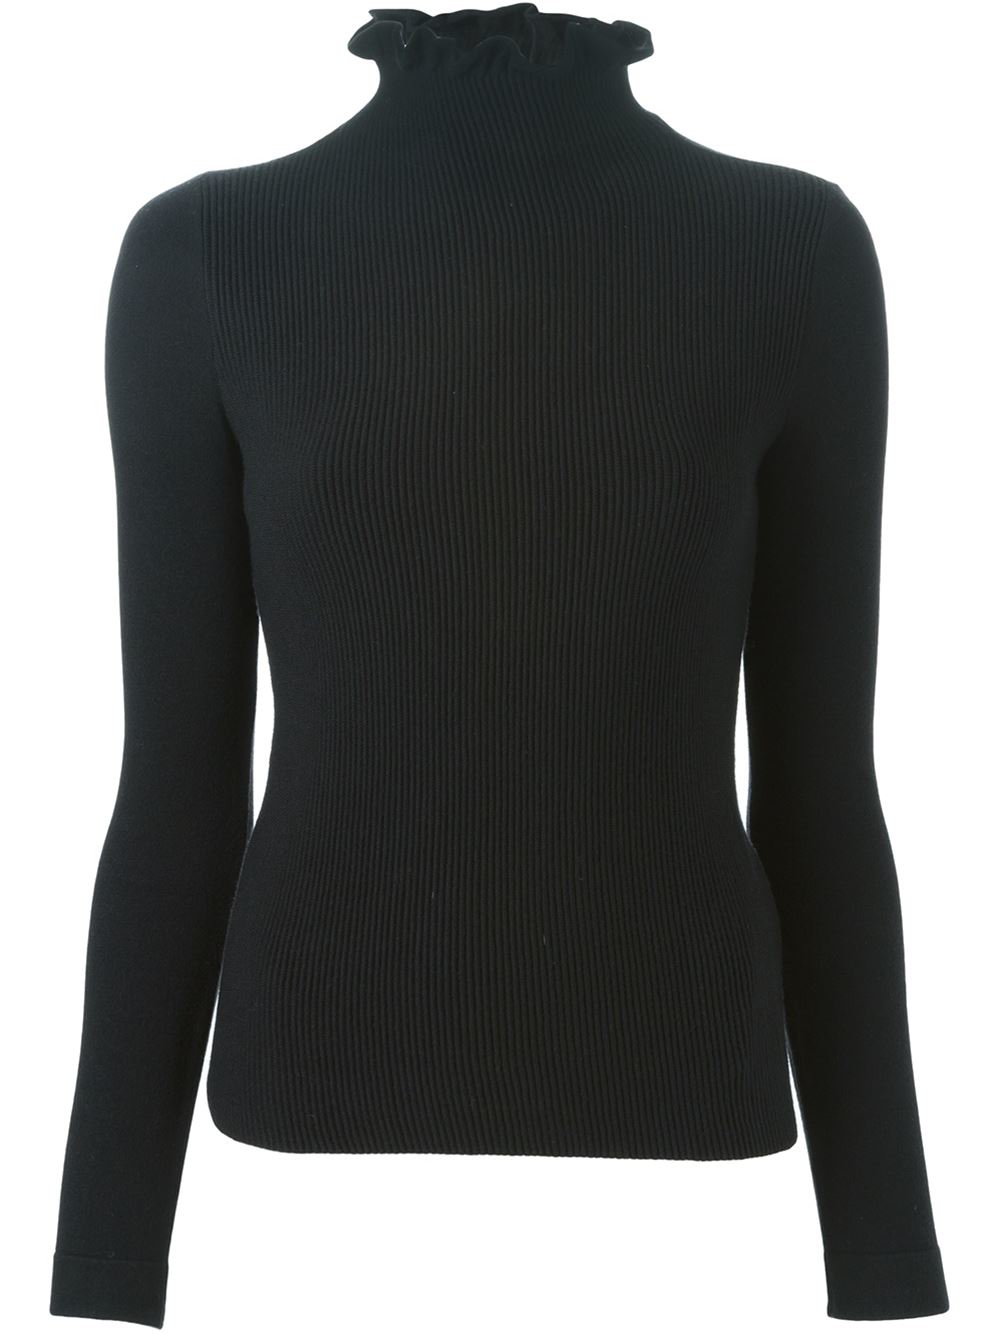 lyst emporio armani turtle neck ribbed front sweater in. Black Bedroom Furniture Sets. Home Design Ideas